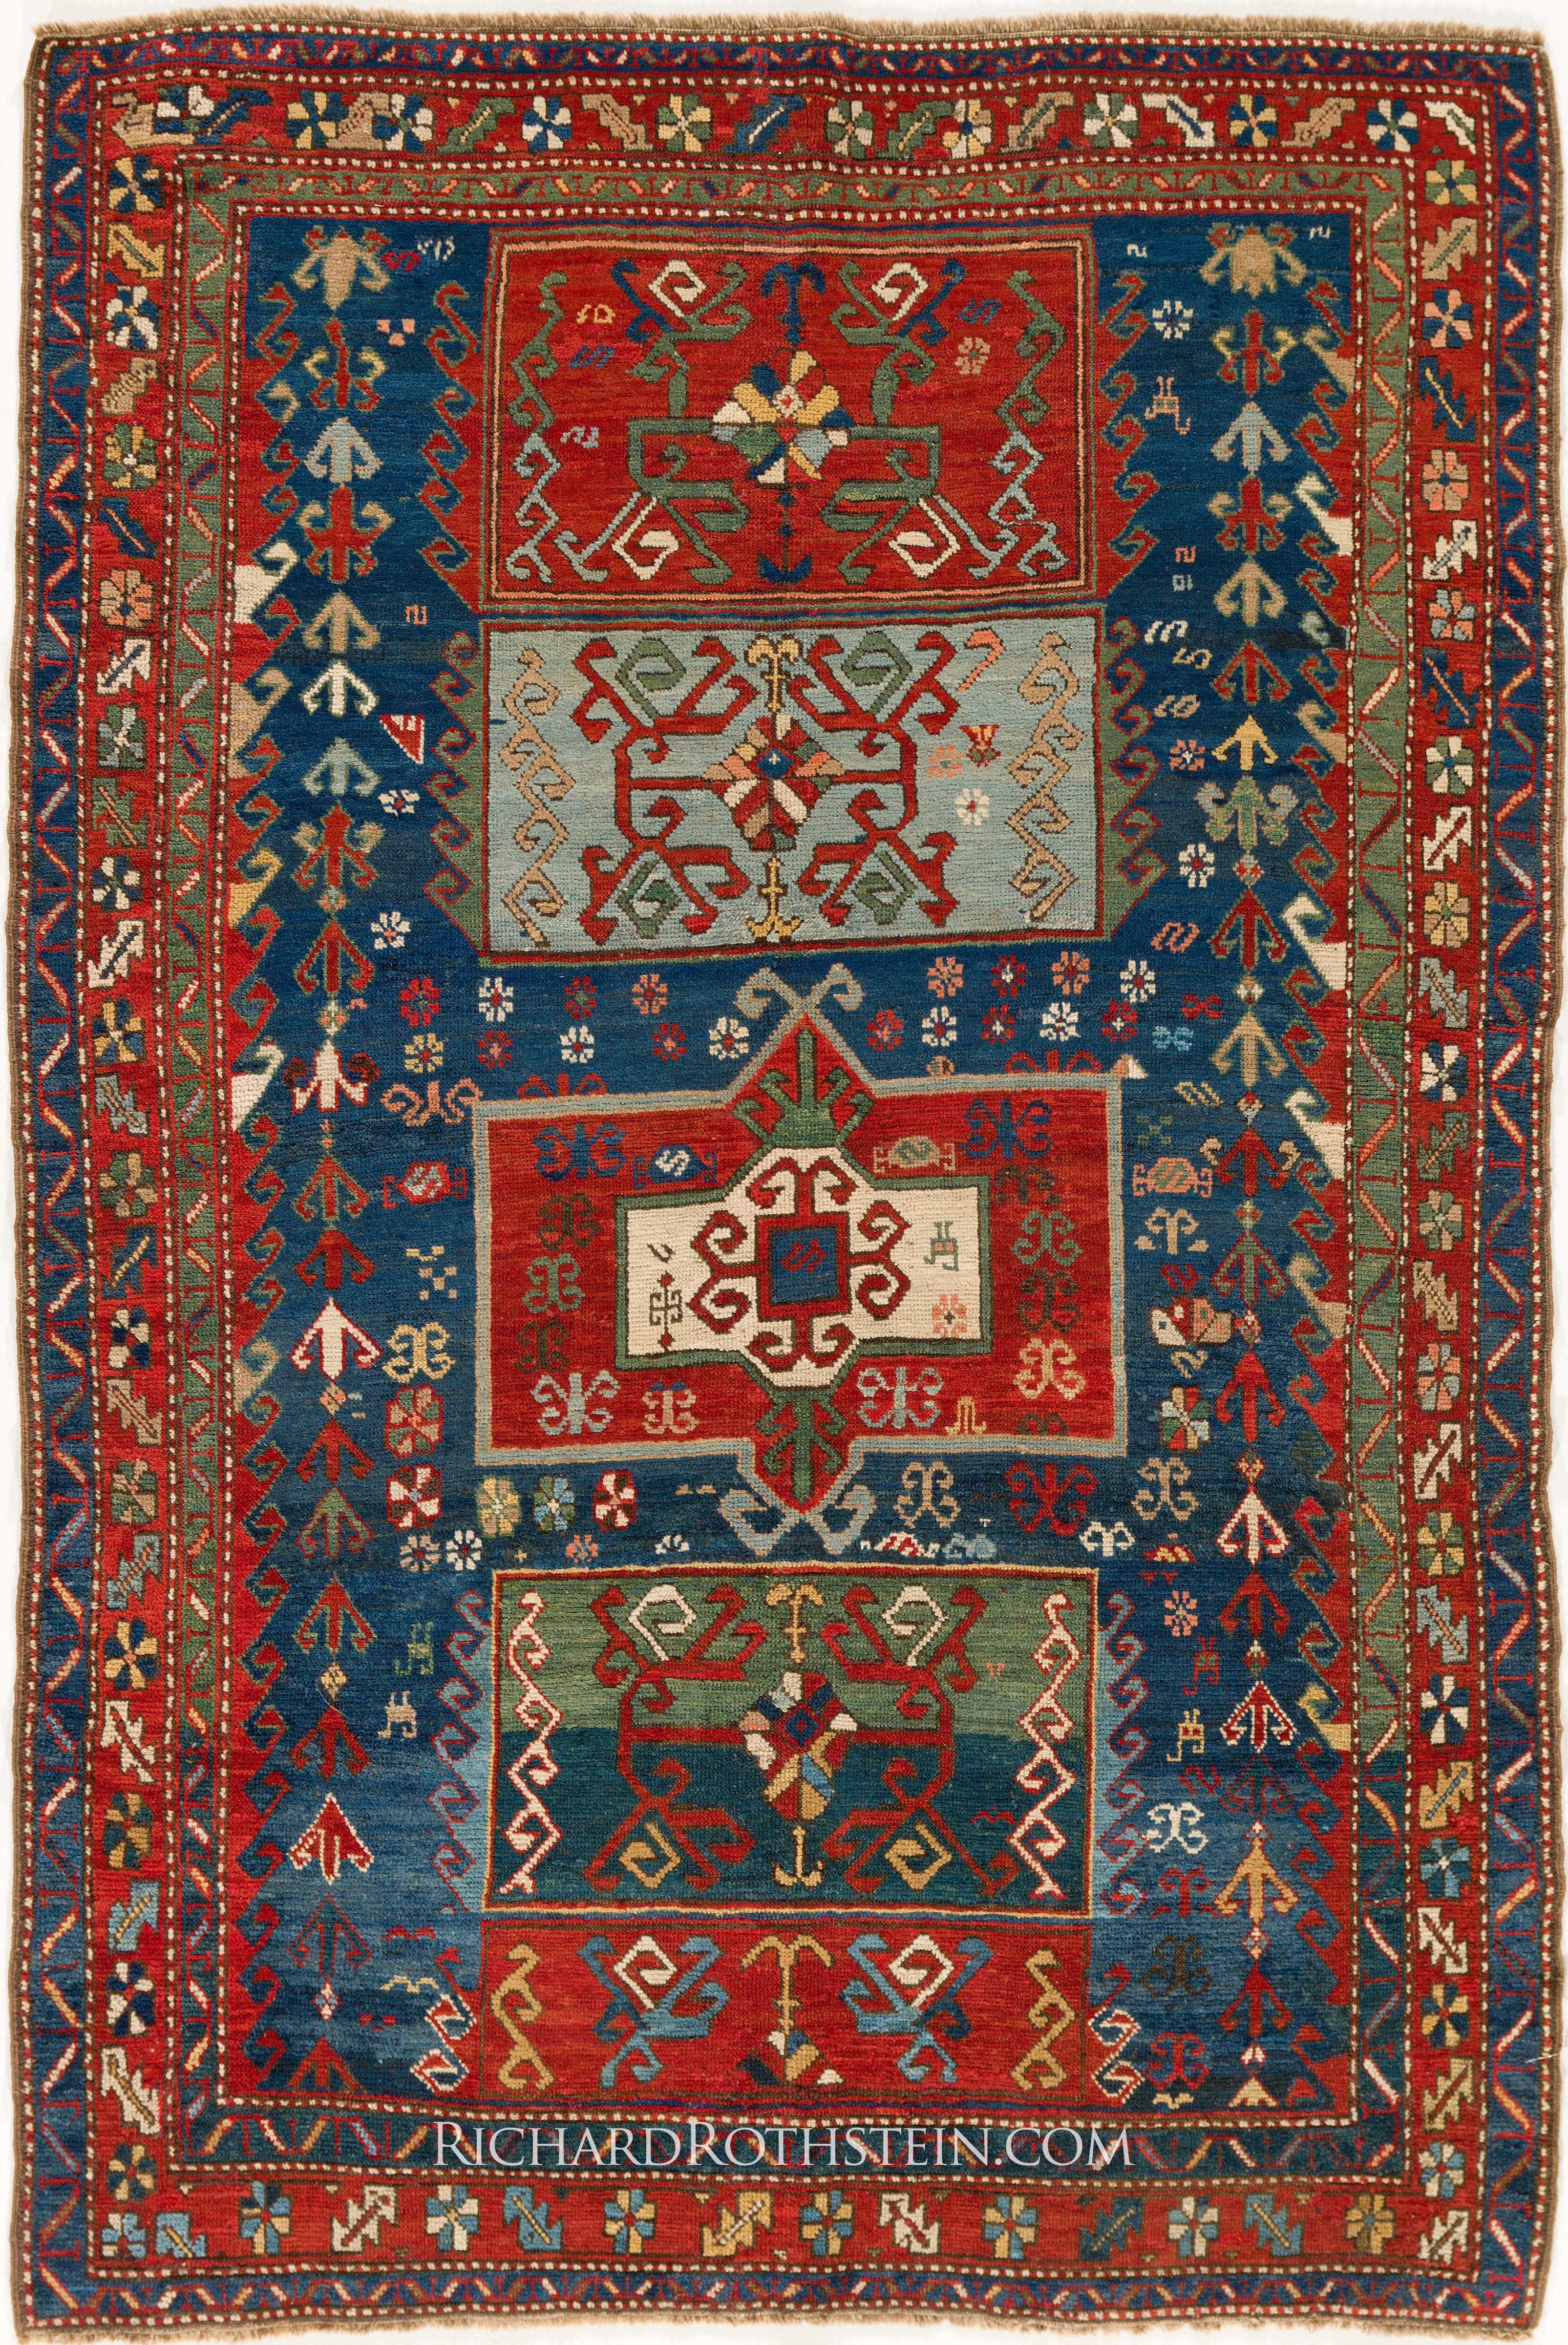 kazak antique oriental rug c54s0762 rugs and carpets pinterest teppiche und wunschlisten. Black Bedroom Furniture Sets. Home Design Ideas